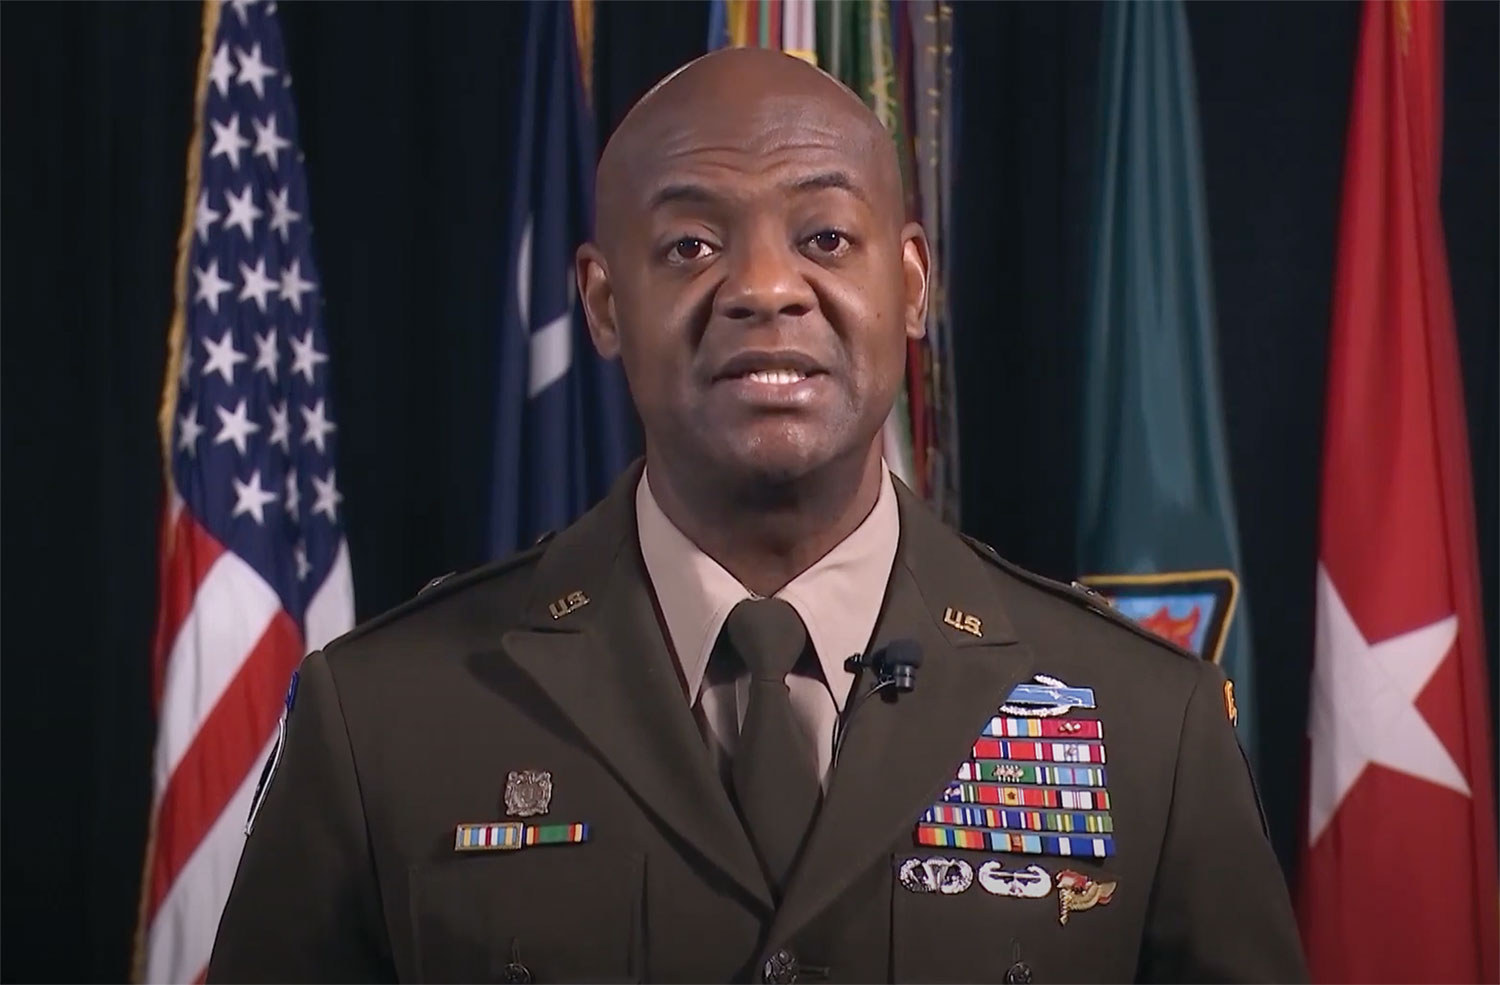 Brig. Gen. Milford Beagle Jr., commanding general of U.S. Army Training Center and Fort Jackson, S.C. and a 2003 graduate of SAMS, delivers remarks during the 2021 SAMS virtual graduation ceremony on May 27.